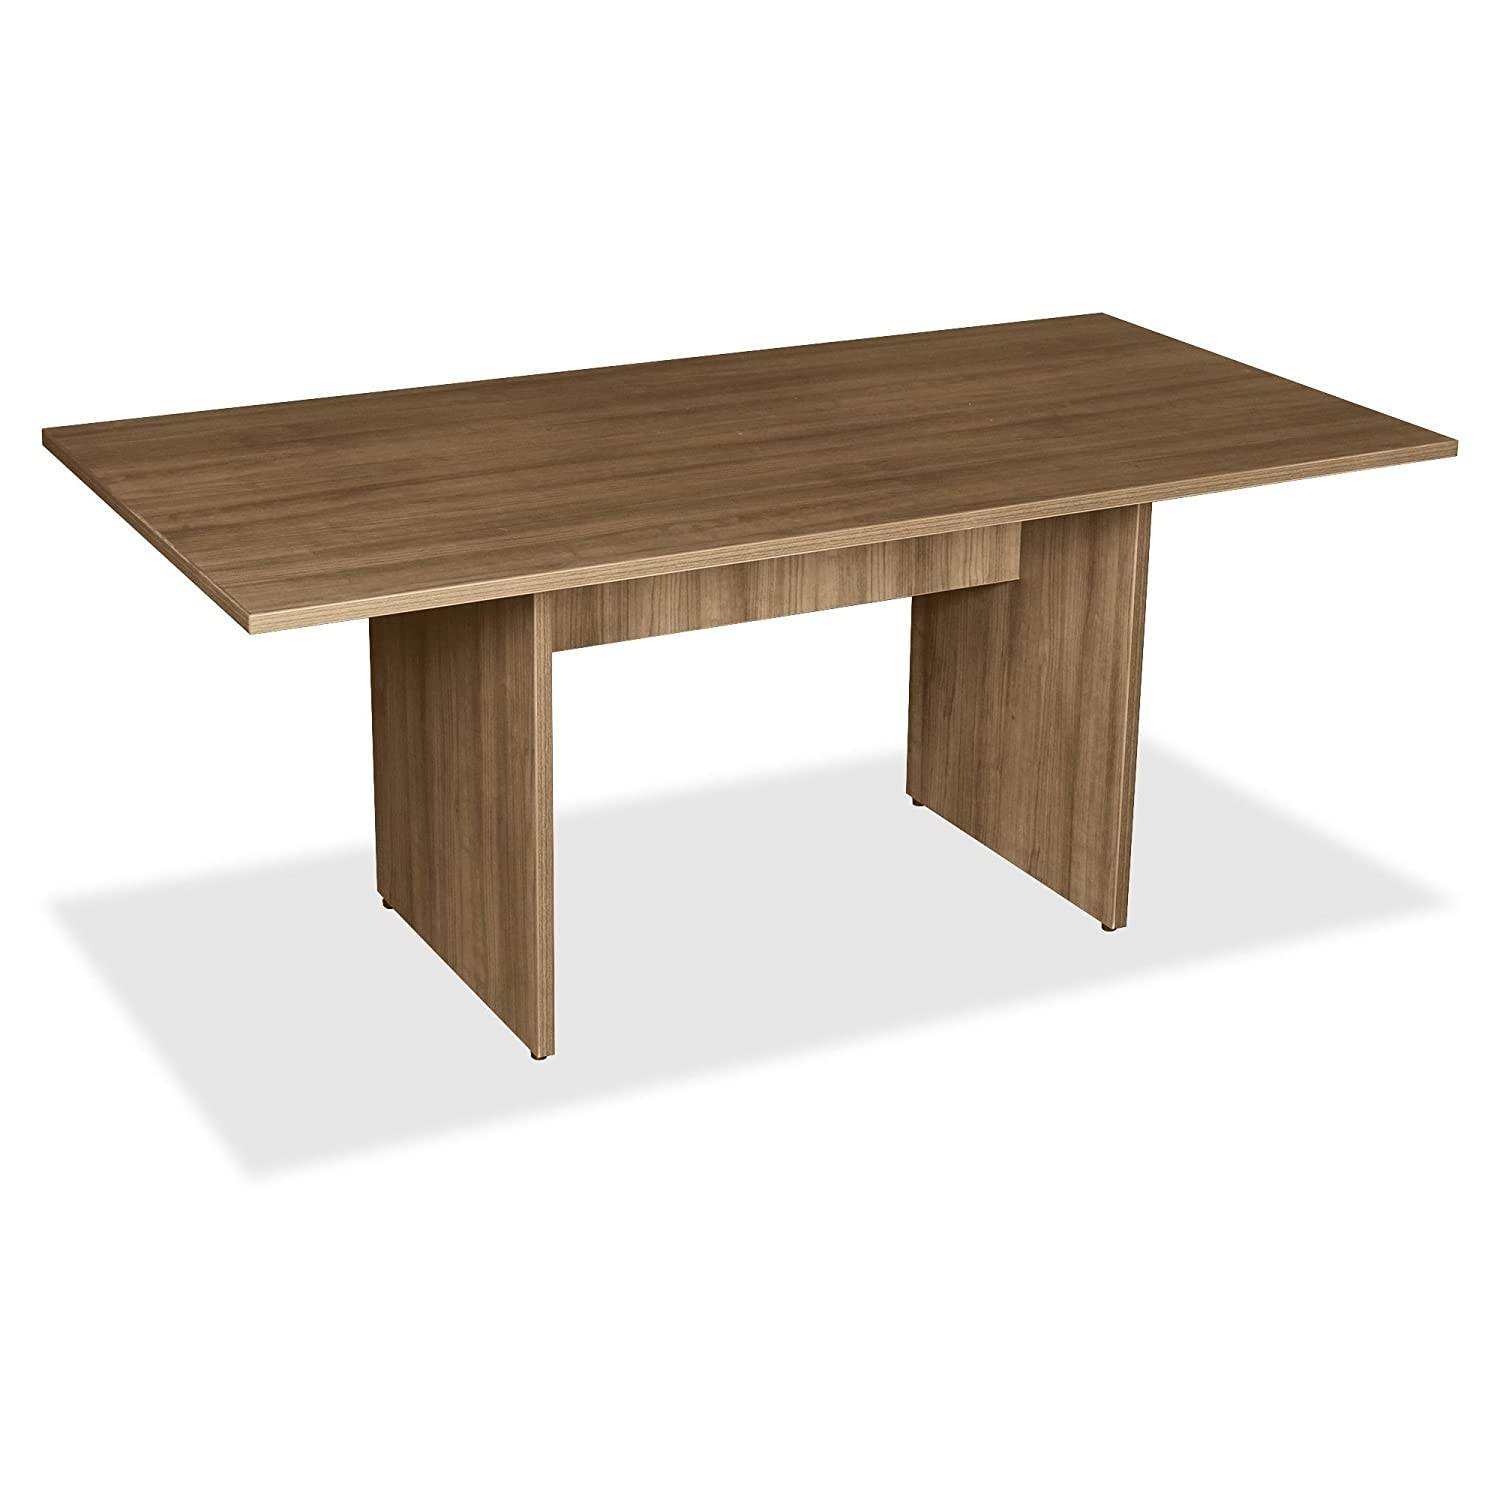 Lorell LLR69996 2-Panel Base Rectangular Walnut Conference Table-Table Top, Edge, 70.9 x35.4 x29-Material: MFC, Polyvinyl Chloride (PVC)-Finish: Walnut Laminate S.P. Richards CA